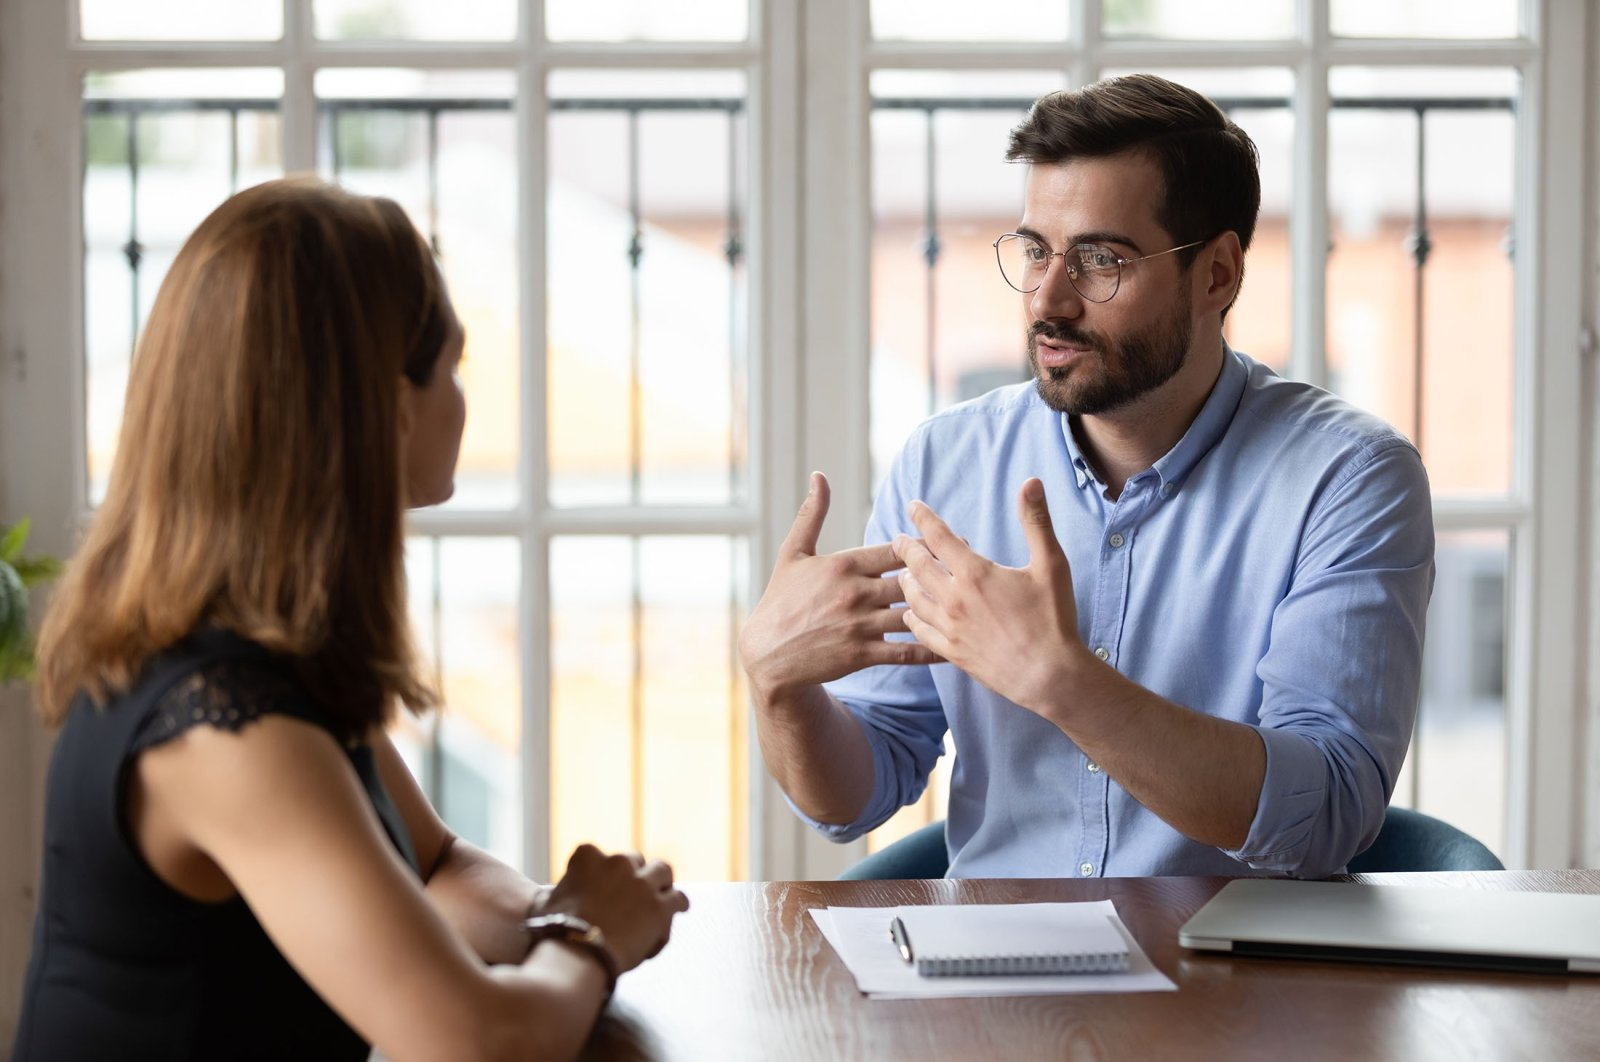 To be a good leader and team player, you need to learn how to give and receive feedback that translates into positive changed behavior. (Shutterstock Photo)